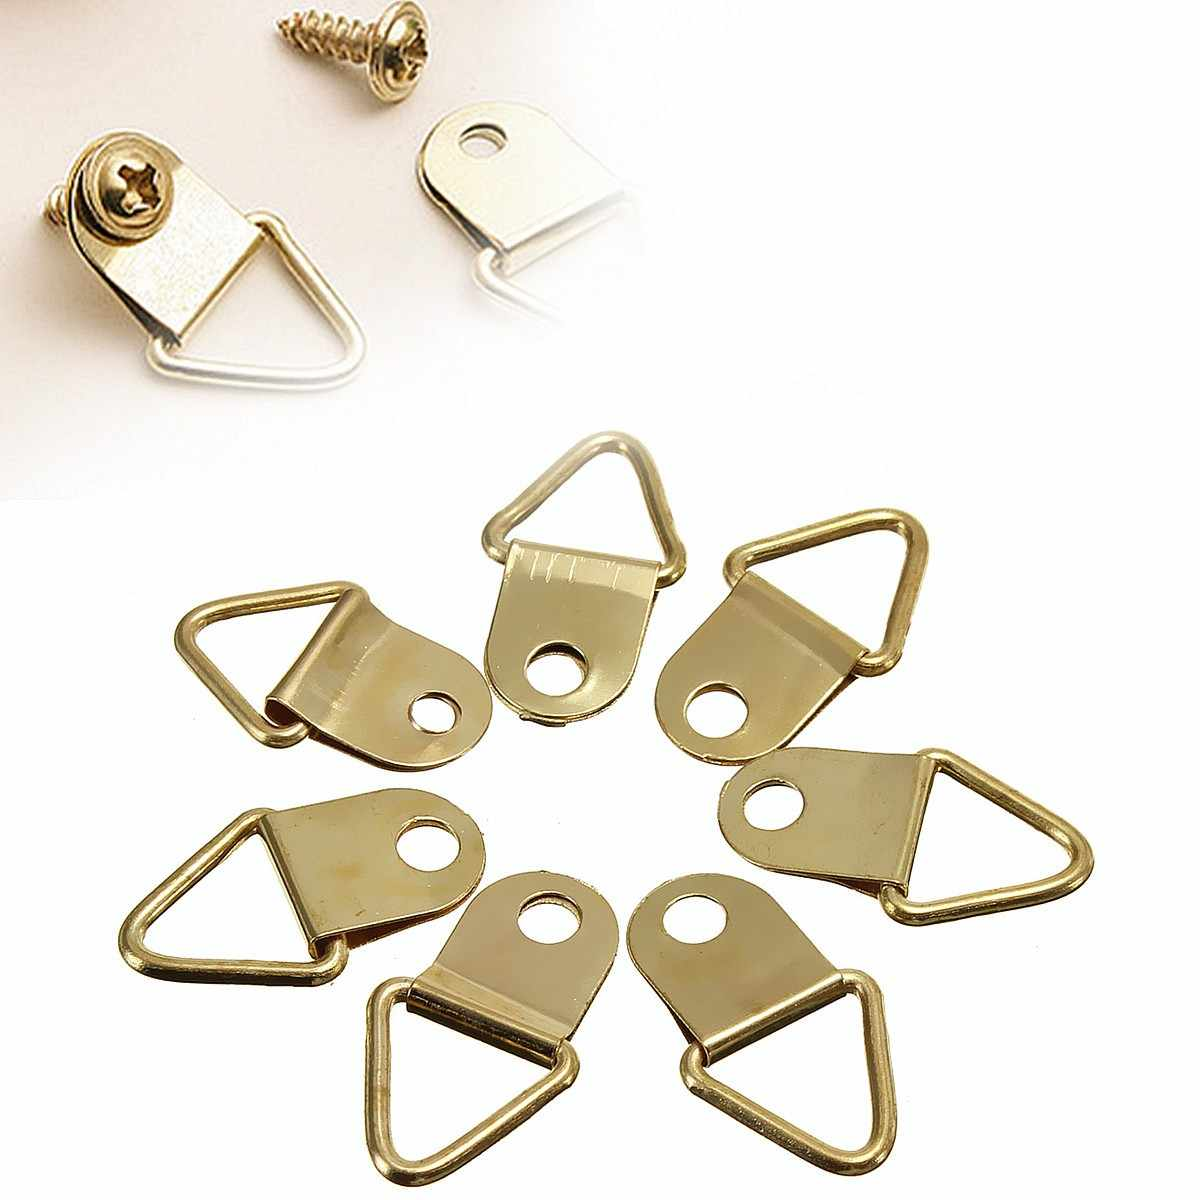 50Pcs Picture Hangers Golden Brass Triangle Photo Picture Frame Wall Mount Hanger Hook Hanging Ring Iron